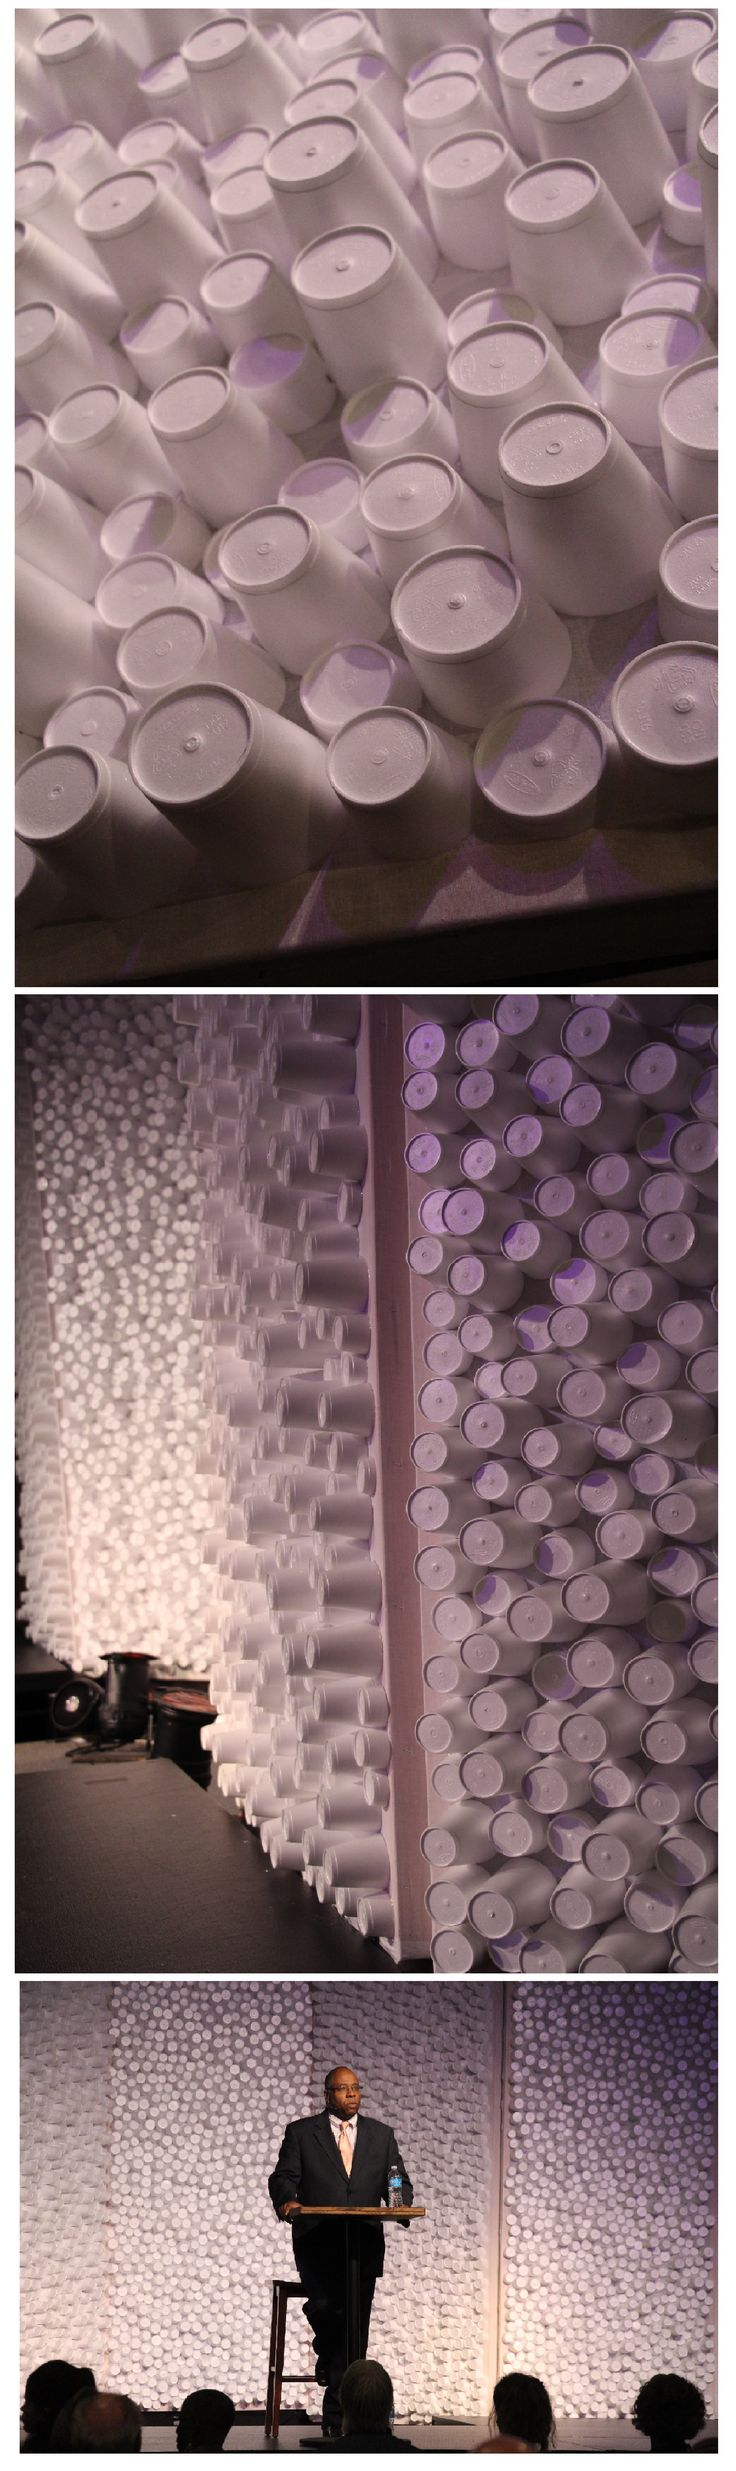 Styrofoam cups get a new life as a stage background.